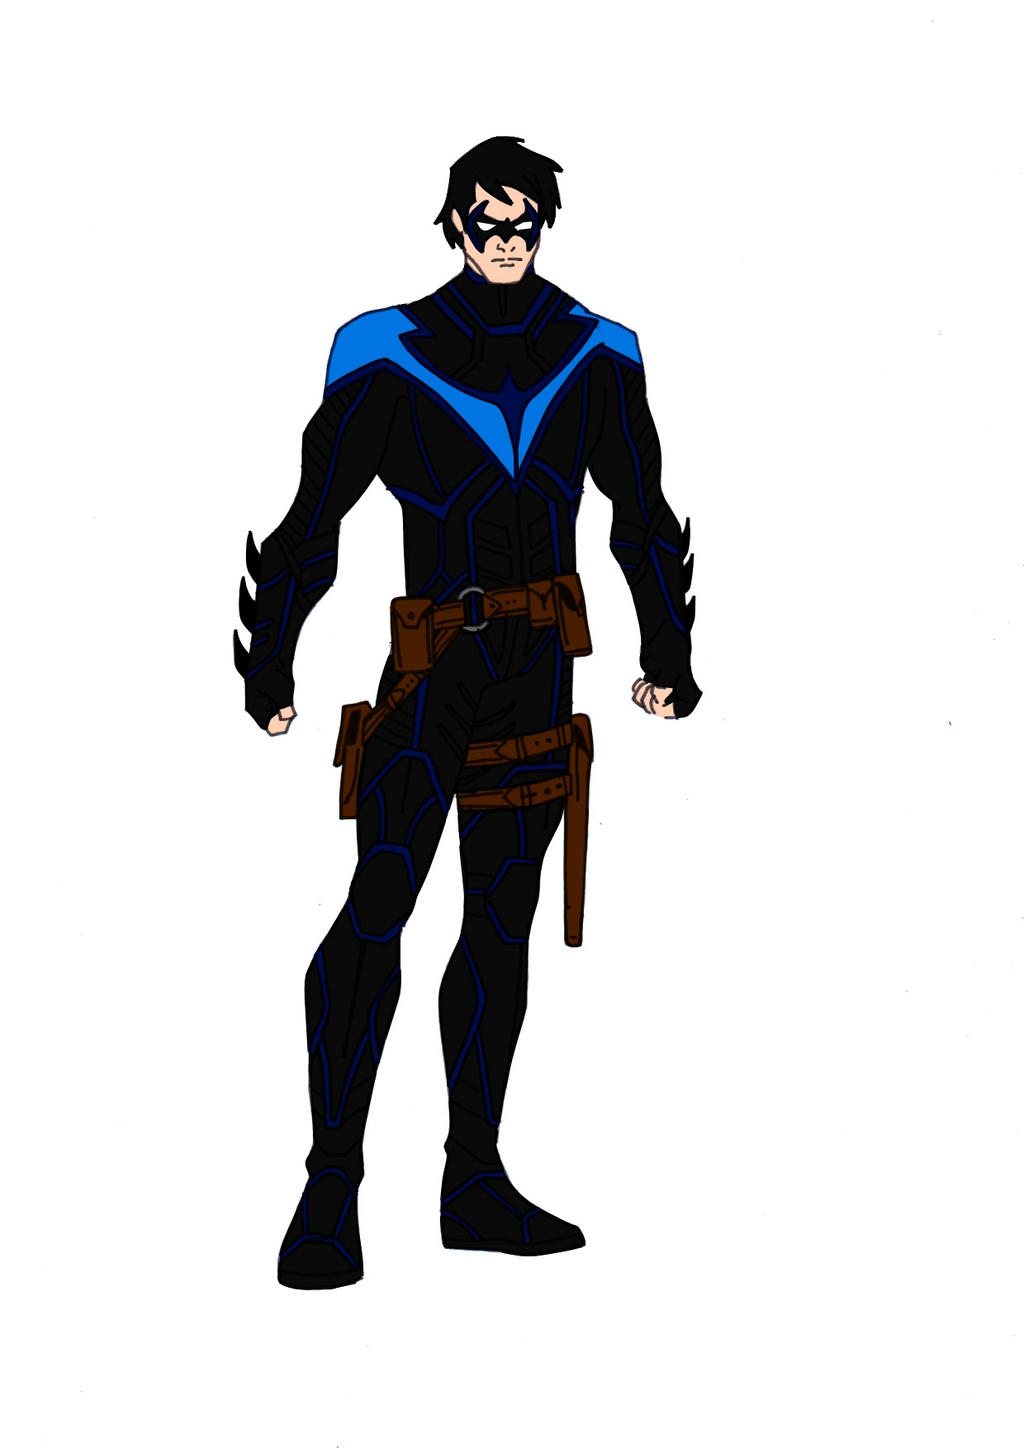 Nightwing Redesign! by Comicbookguy54321